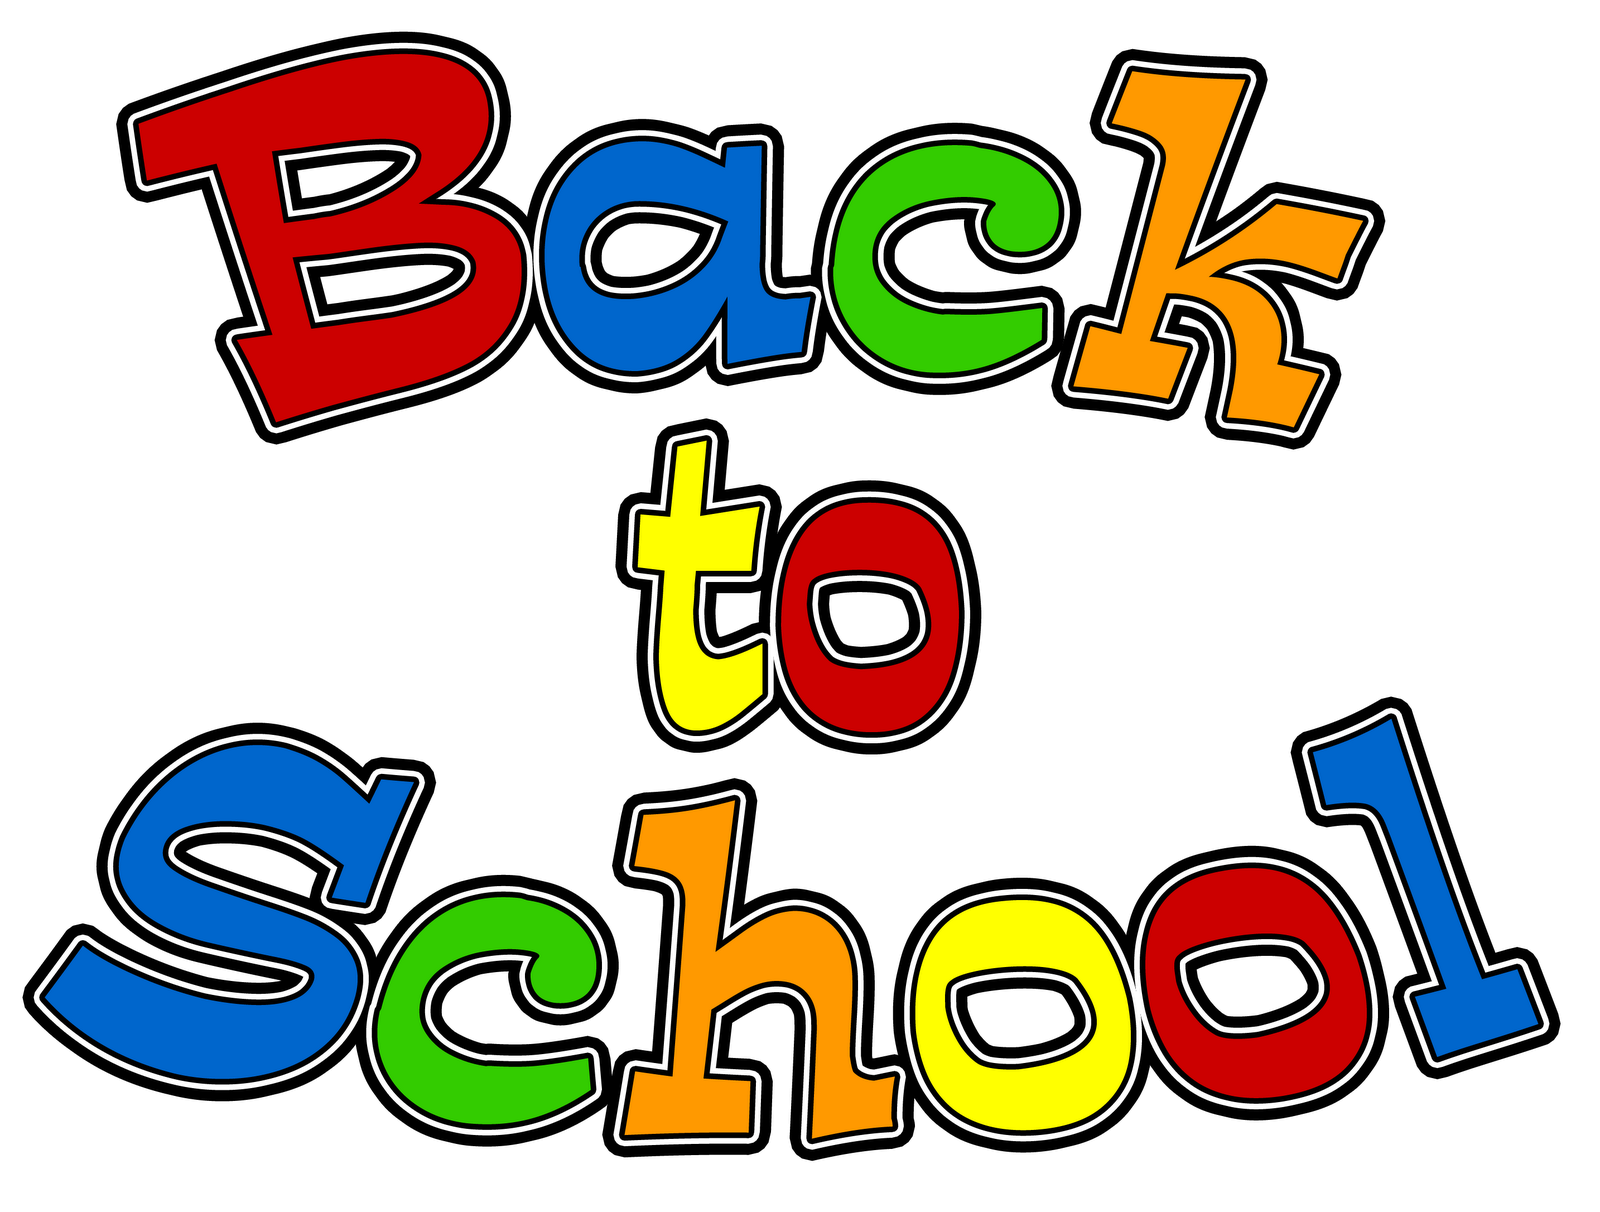 Back to school school clipart education clip art school clip art 3